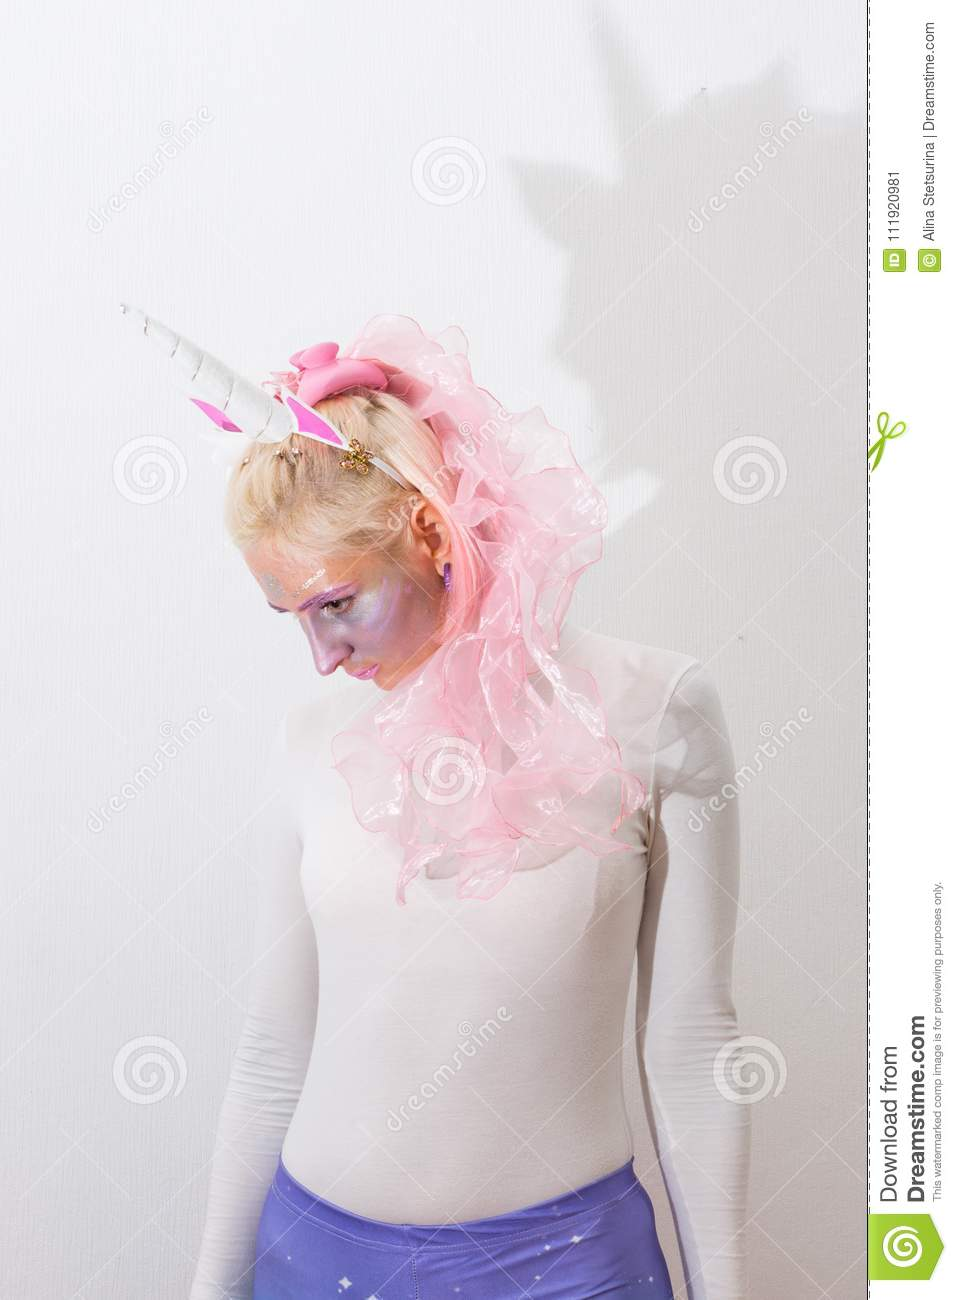 pink cute girl unicorn on white background young woman close up portrait halloween costume